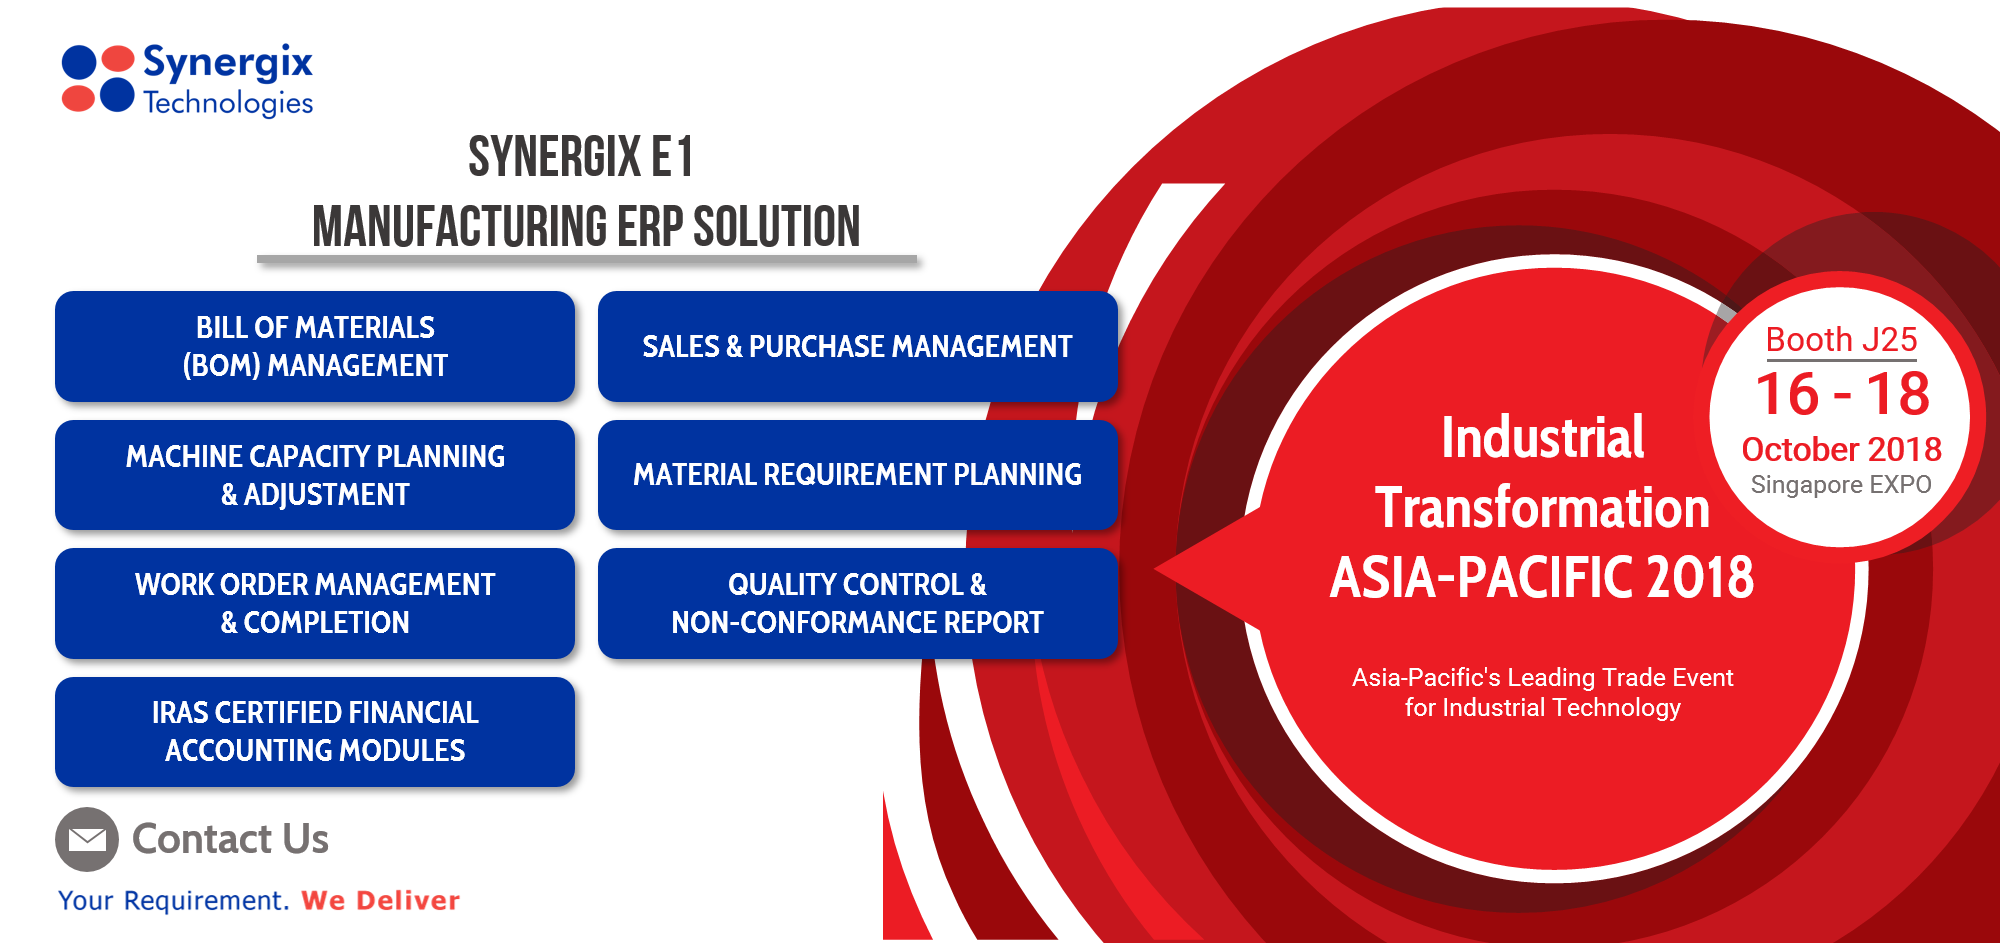 synergix e1 erp system at industrial transformation asia pacific 2018